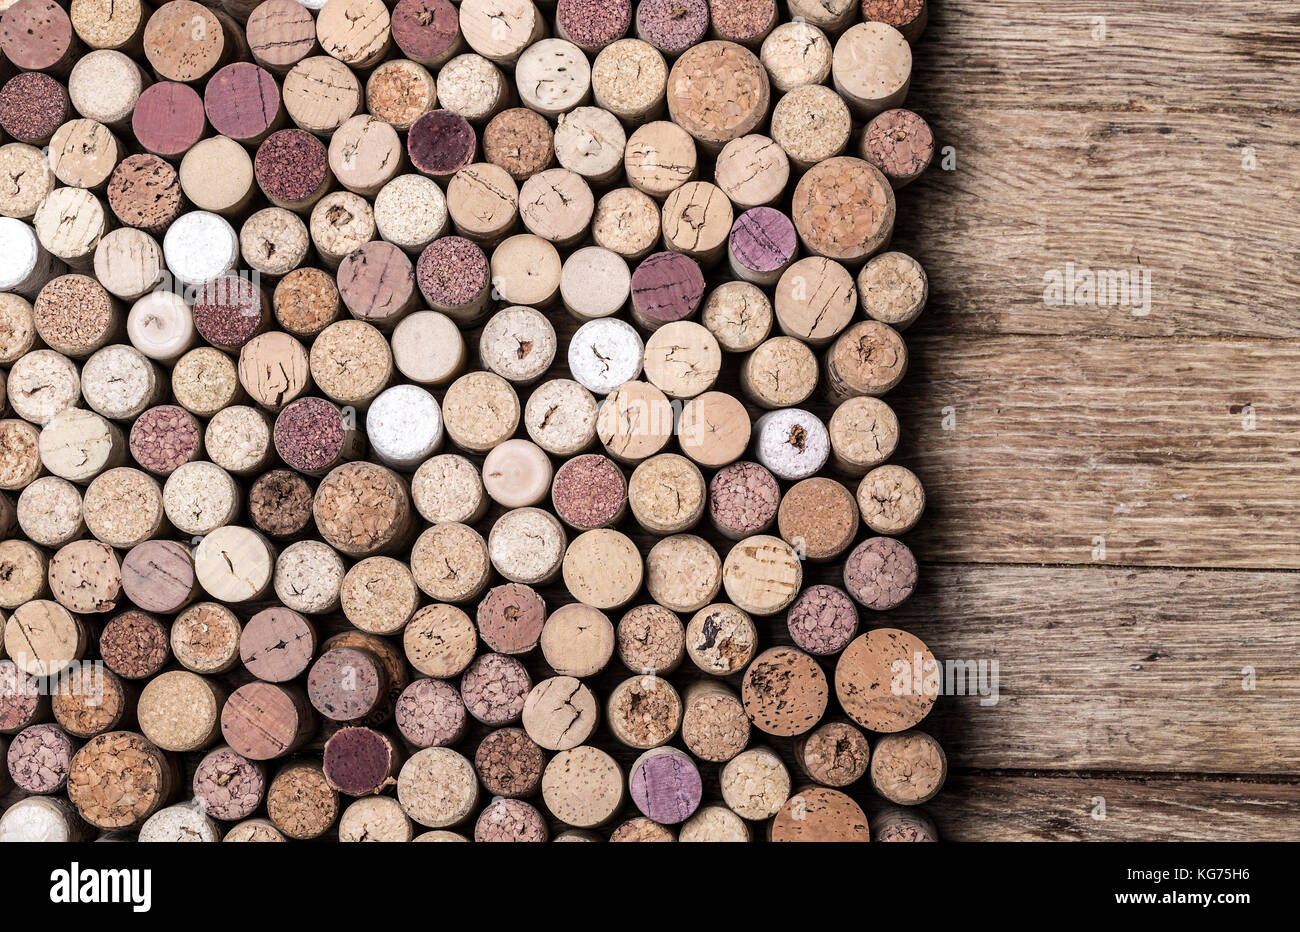 Wine corks on rustic wooden table background - Stock Image